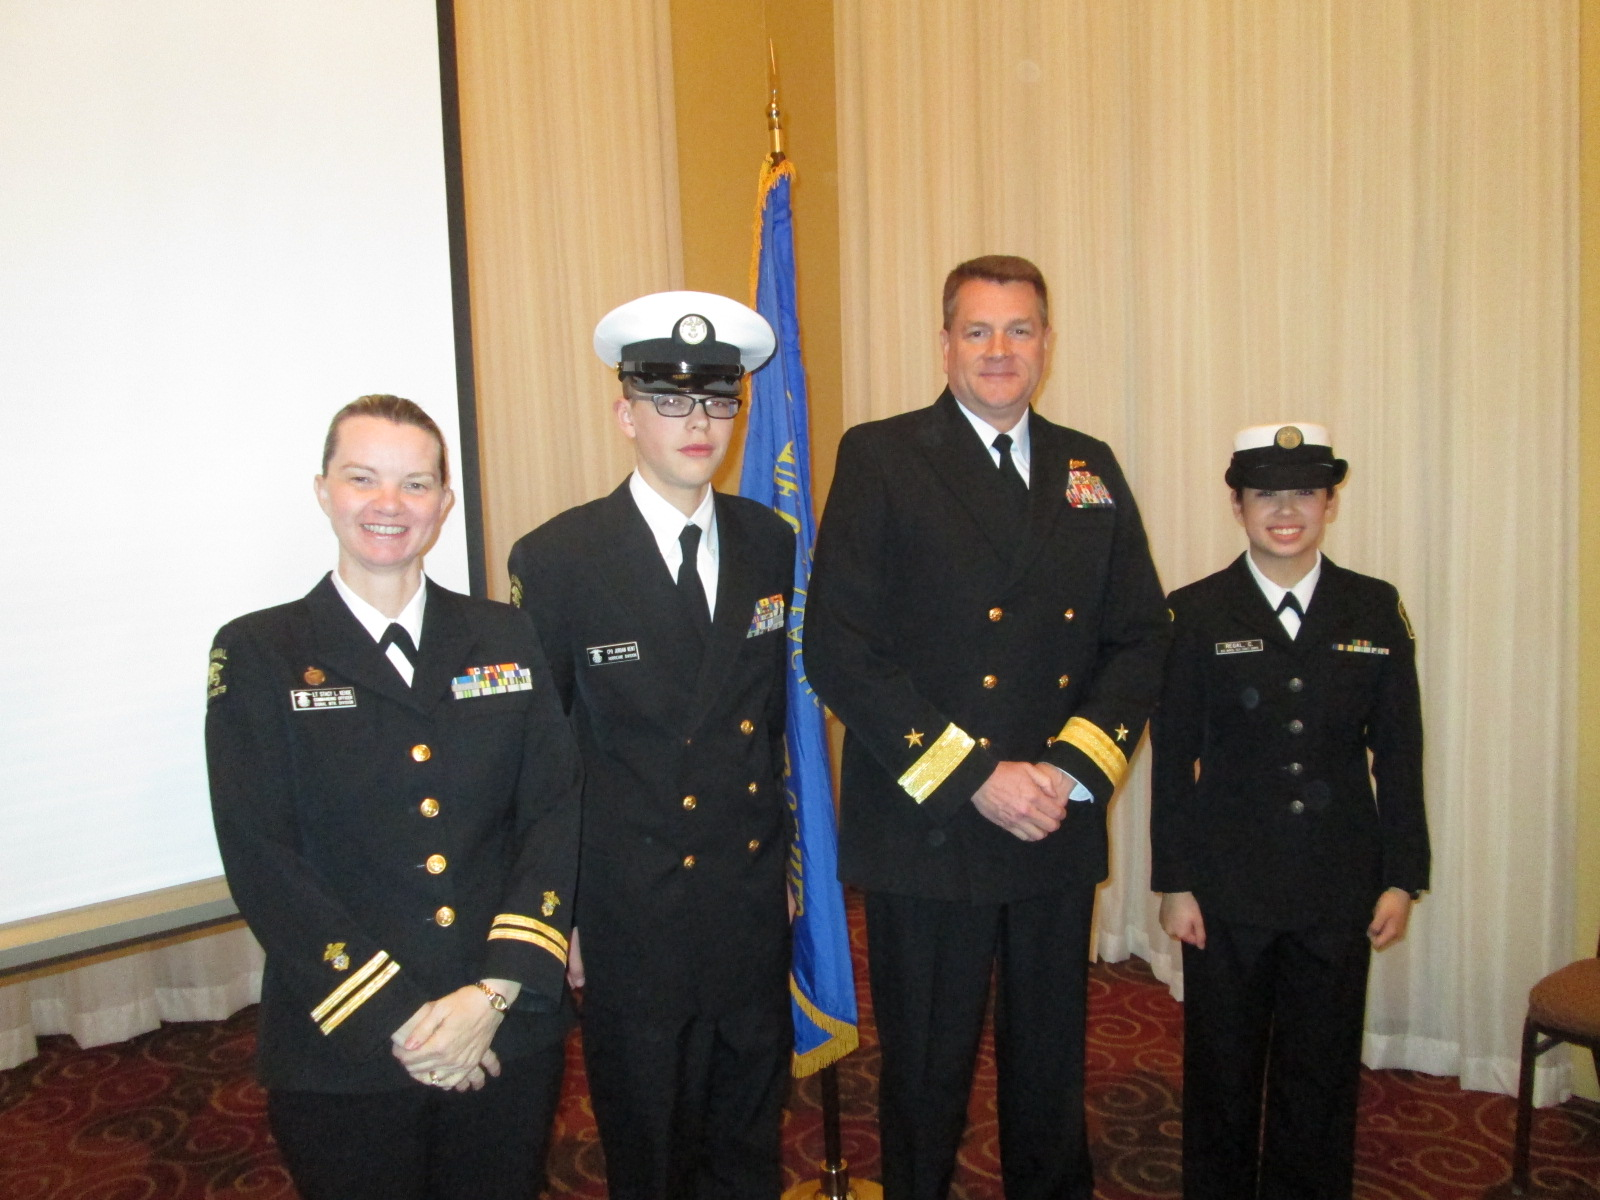 IMG_4859_Stacy_Kehoe__Jordan_Kent__RADM_Davis__Callie_Regal.JPG